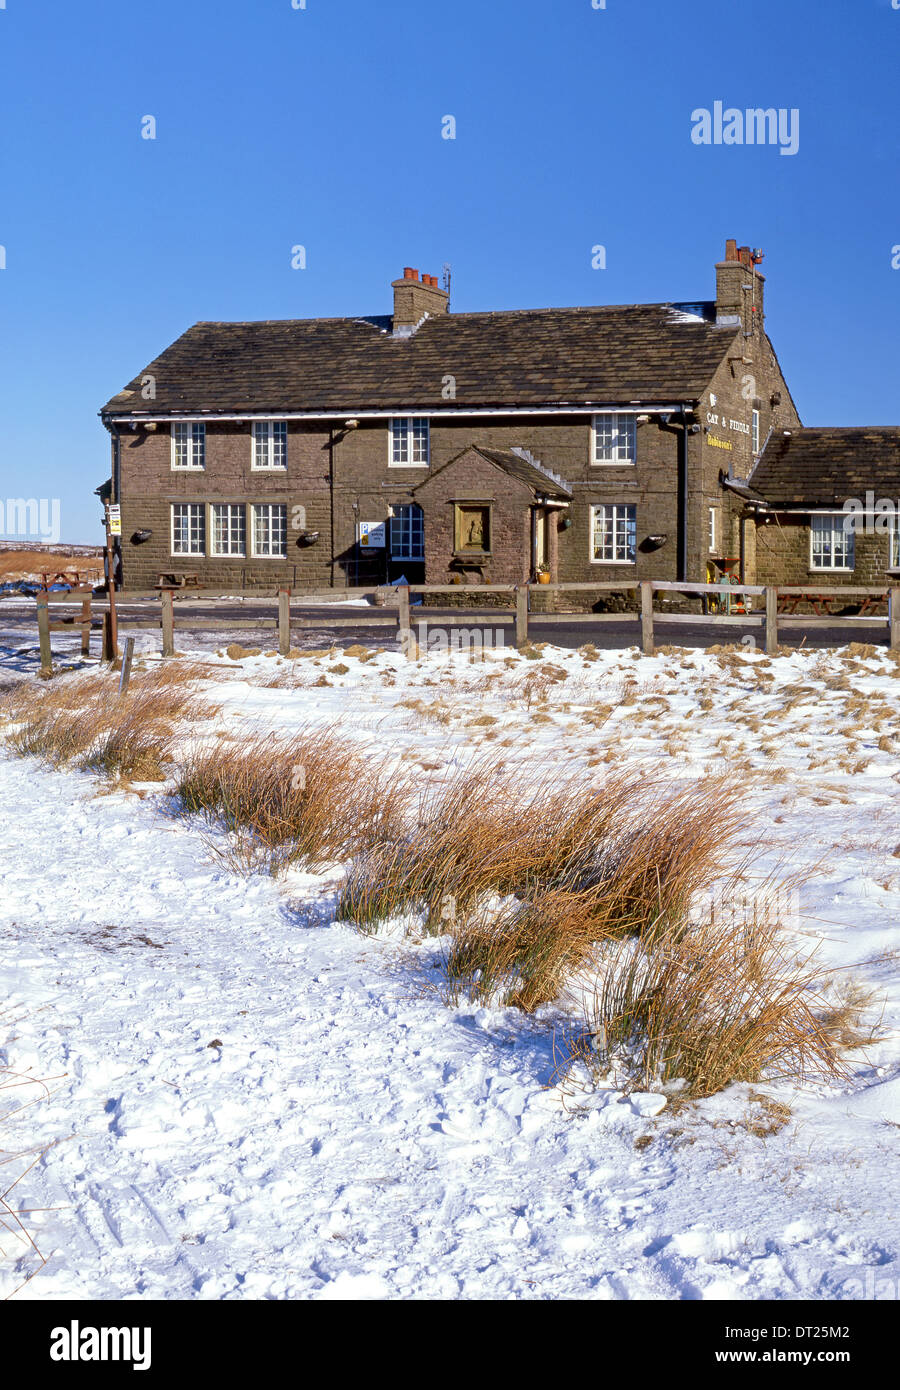 The Cat & Fiddle Inn in Winter, Cheshire, Peak District National Park, England, UK - Stock Image